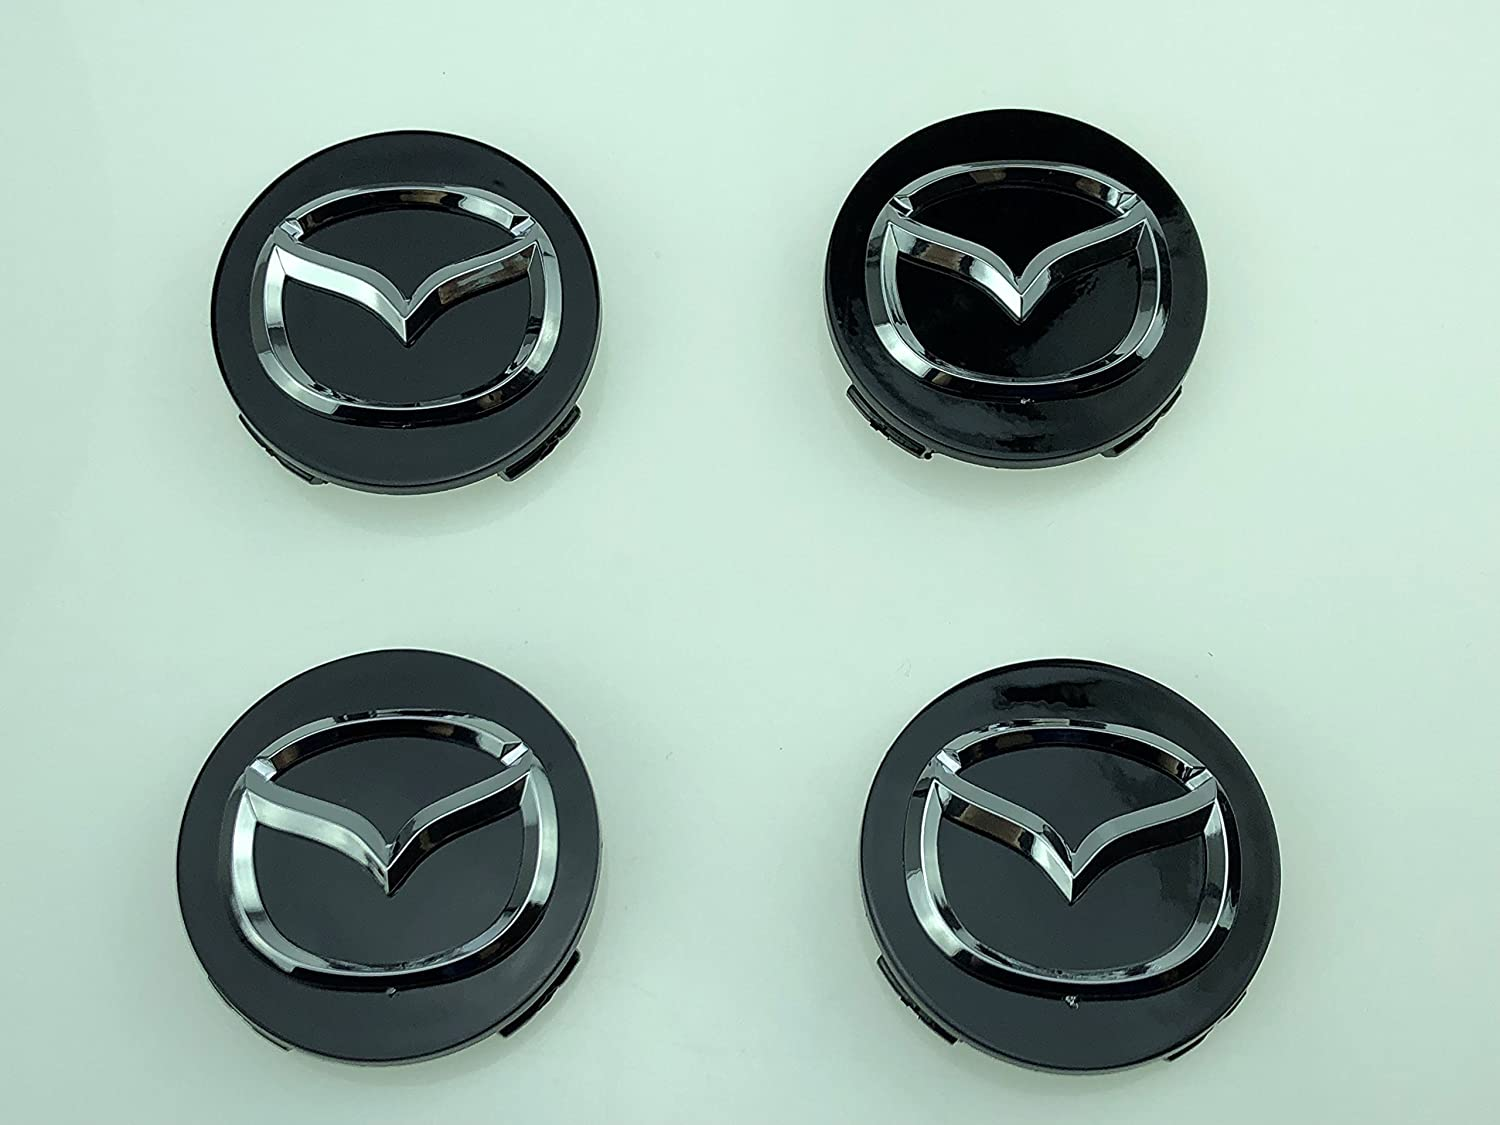 AOWIFT x4 Wheel Center BADGE Caps HUB 56mm MAZDA 2 3 6 CX-3 CX-5 MX-5 BLACK CHROME LOGO